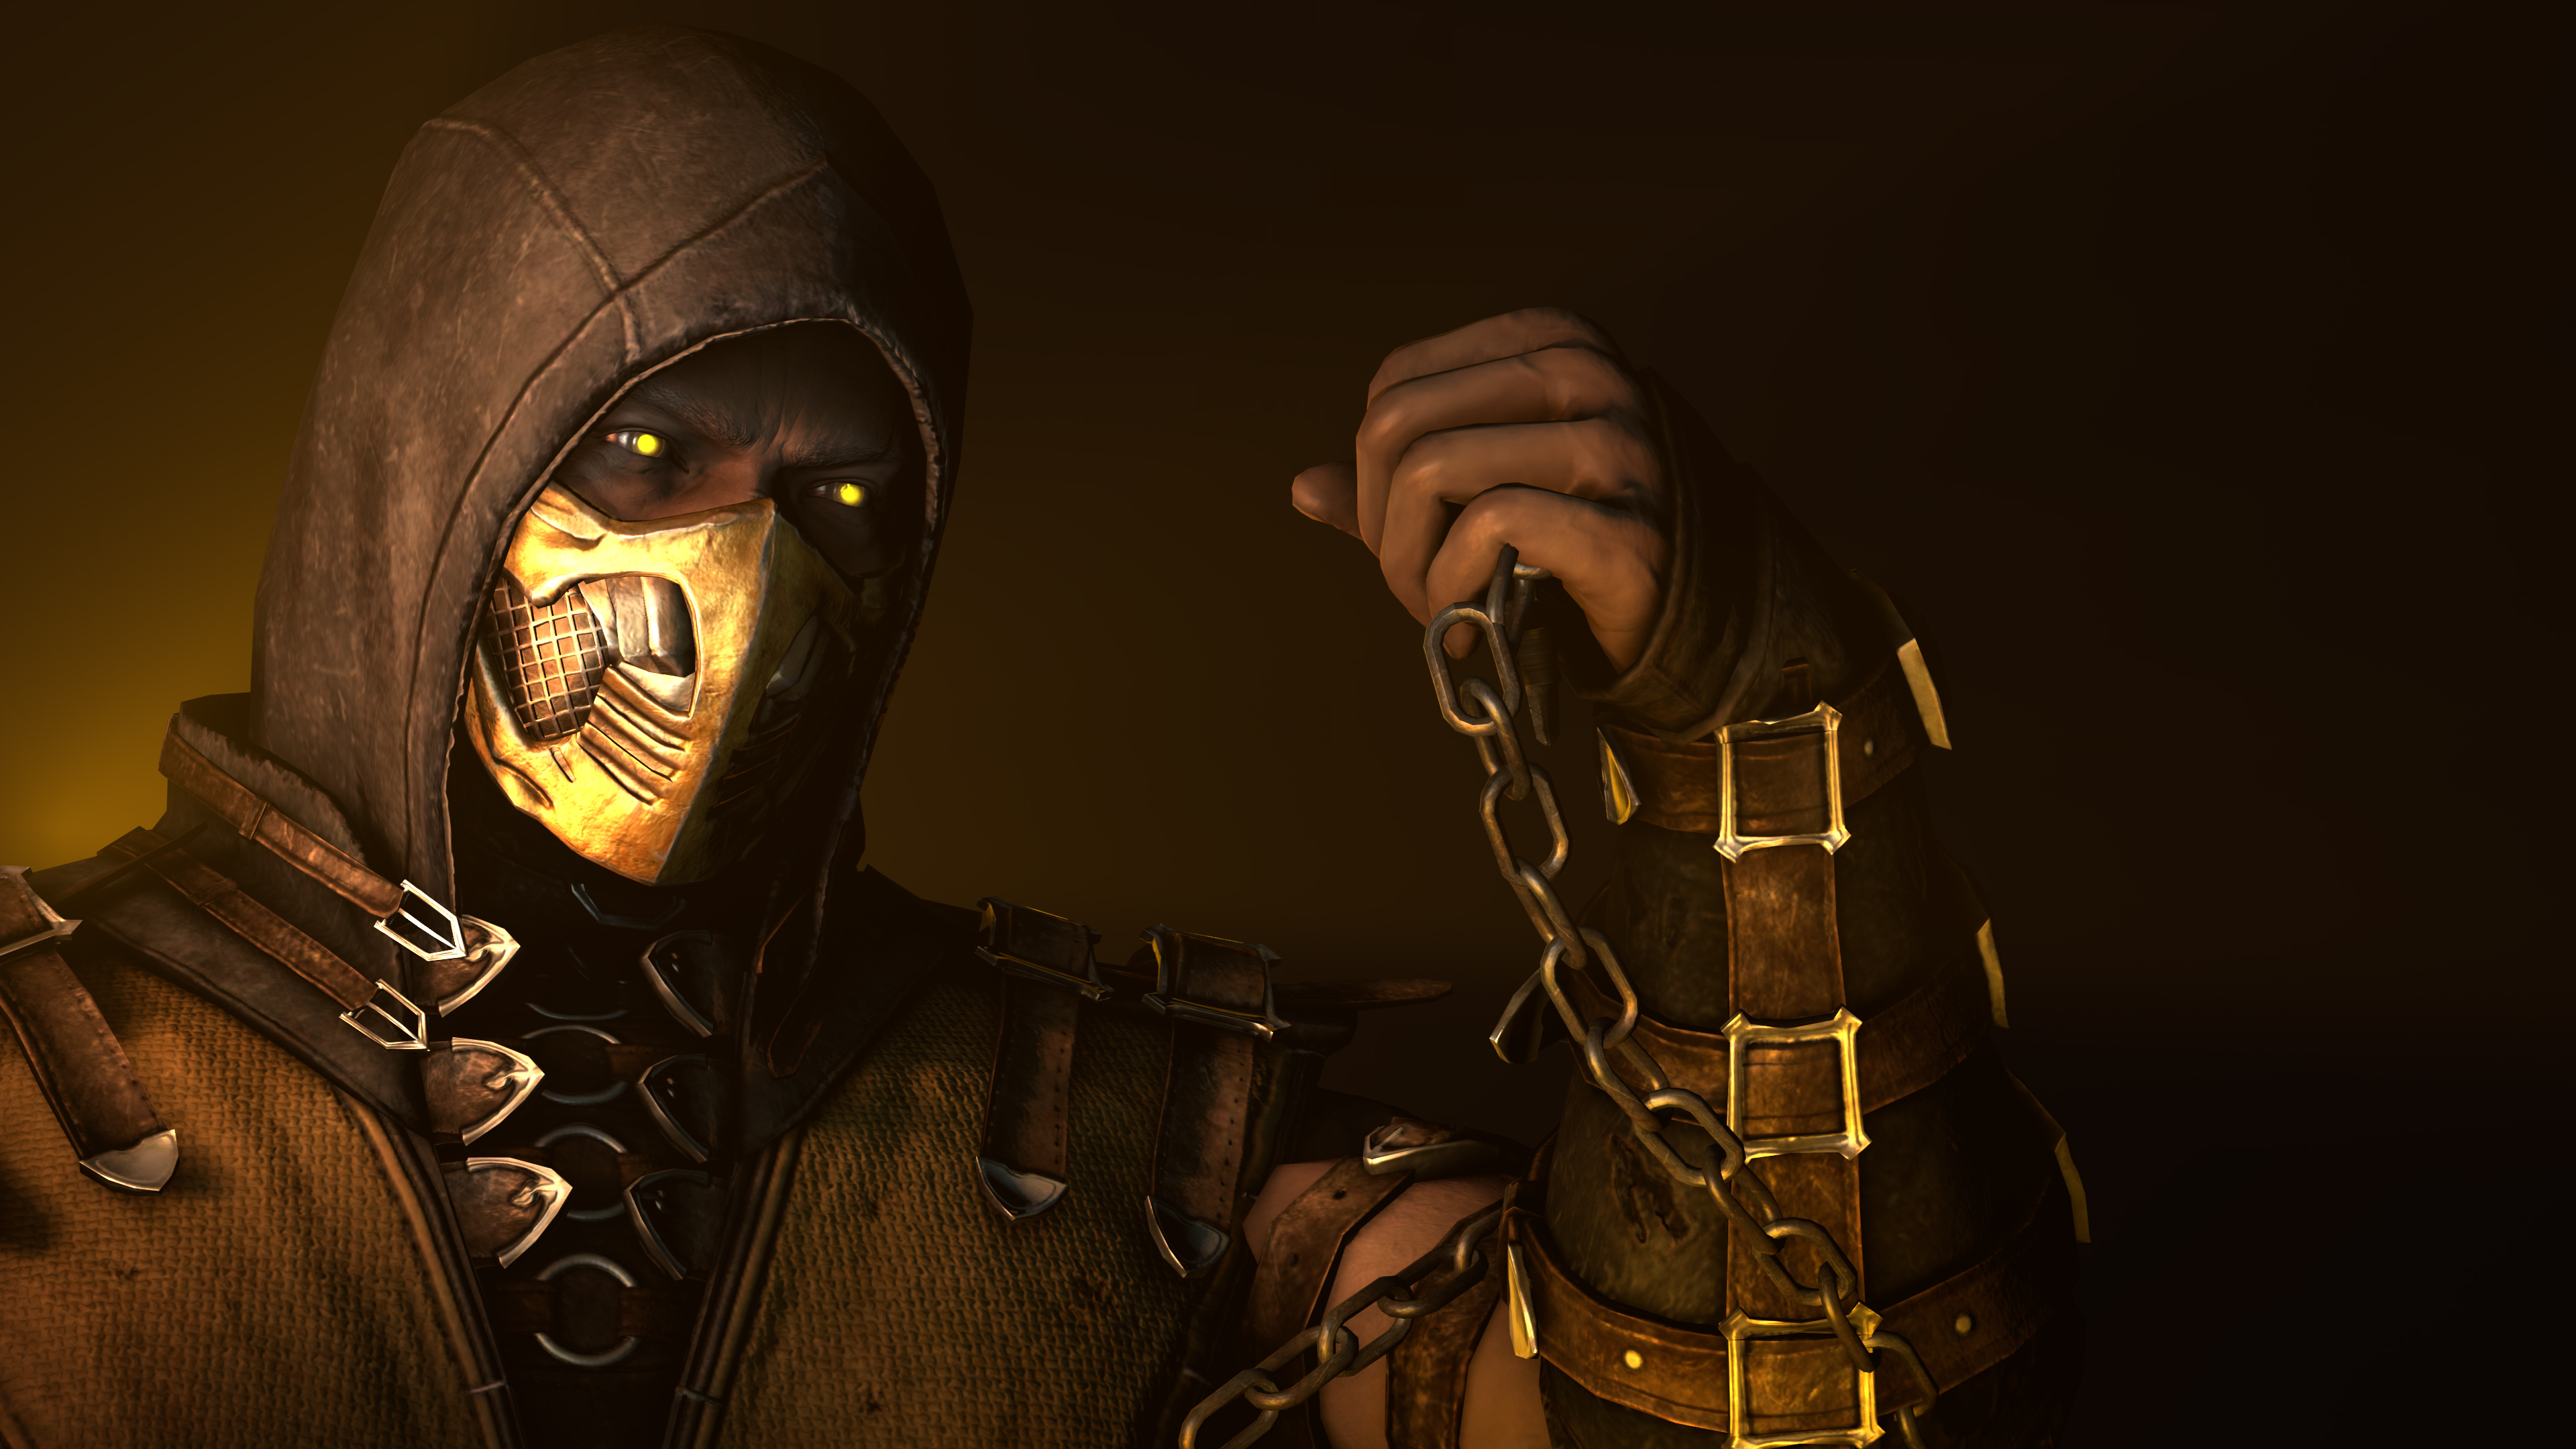 Scorpion Mortal Kombat X Poster Hd Games 4k Wallpapers Images